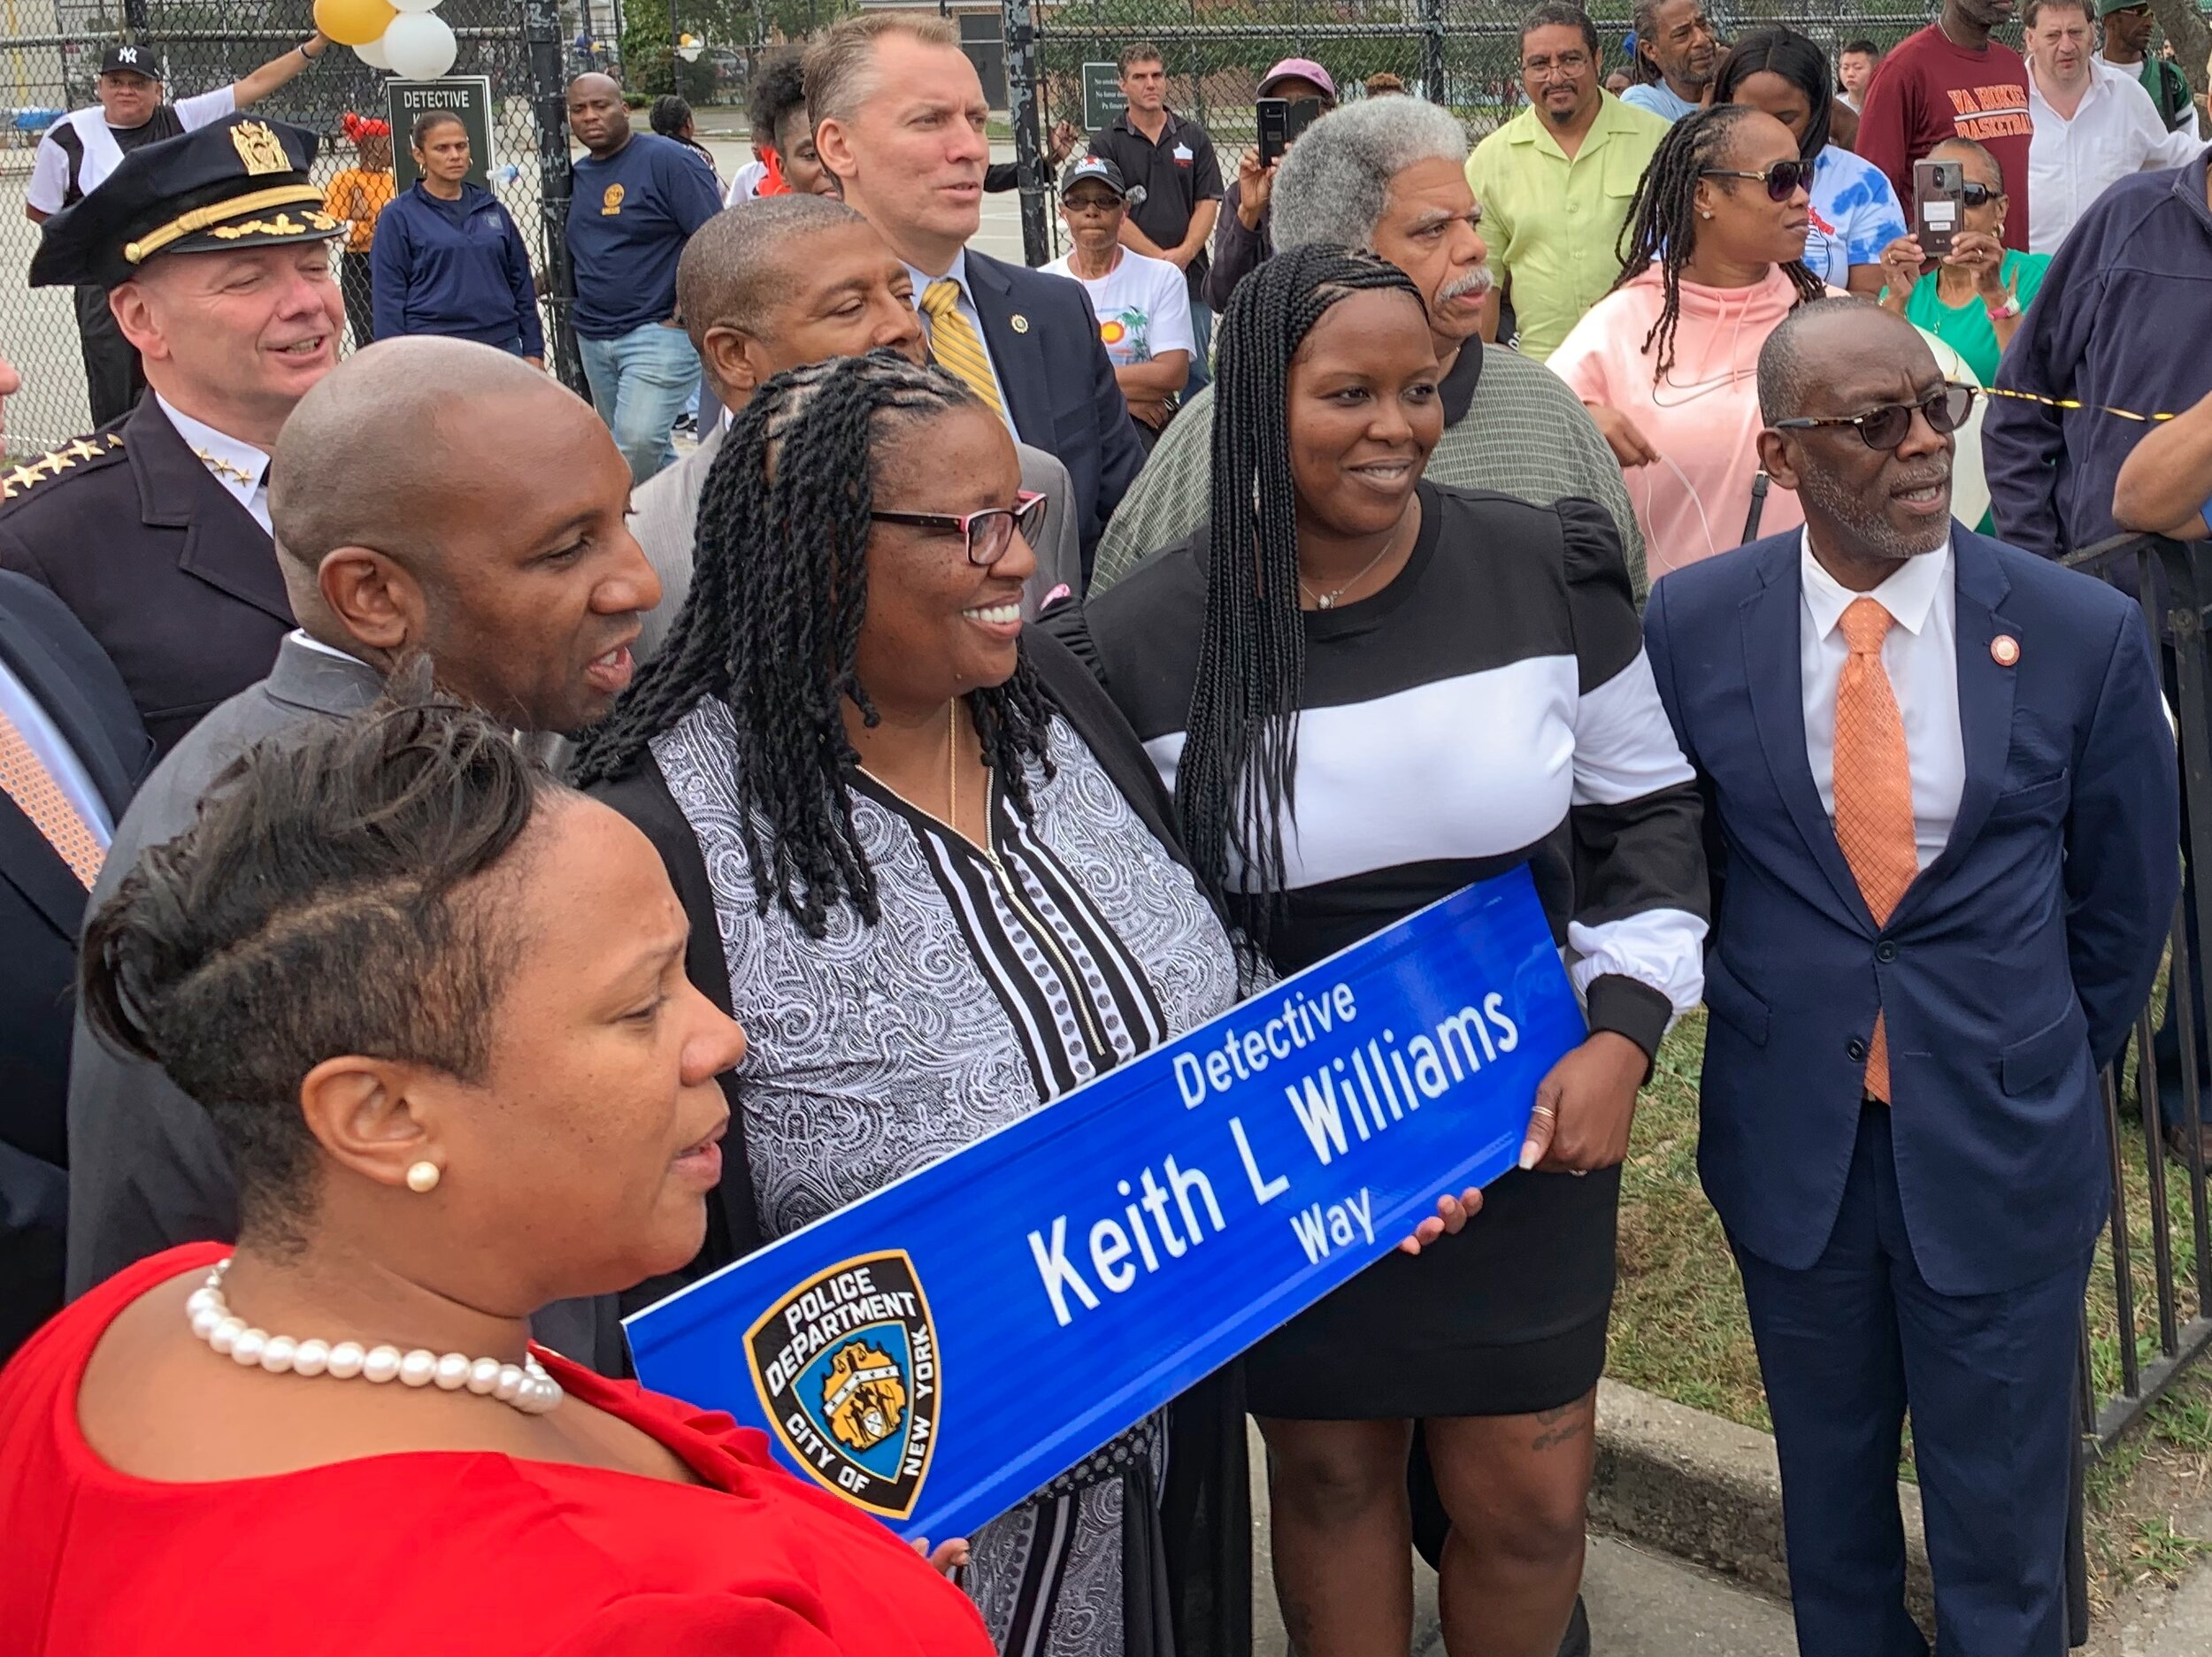 Rita Williams (center), wife of fallen Detective Keith L. Williams, proudly stands with her husband's street sign alongside family members and NYC Council Member I. Daneek Miller (right) shortly after Saturday's ceremony.  Eagle  photos by Joseph Jungermann.